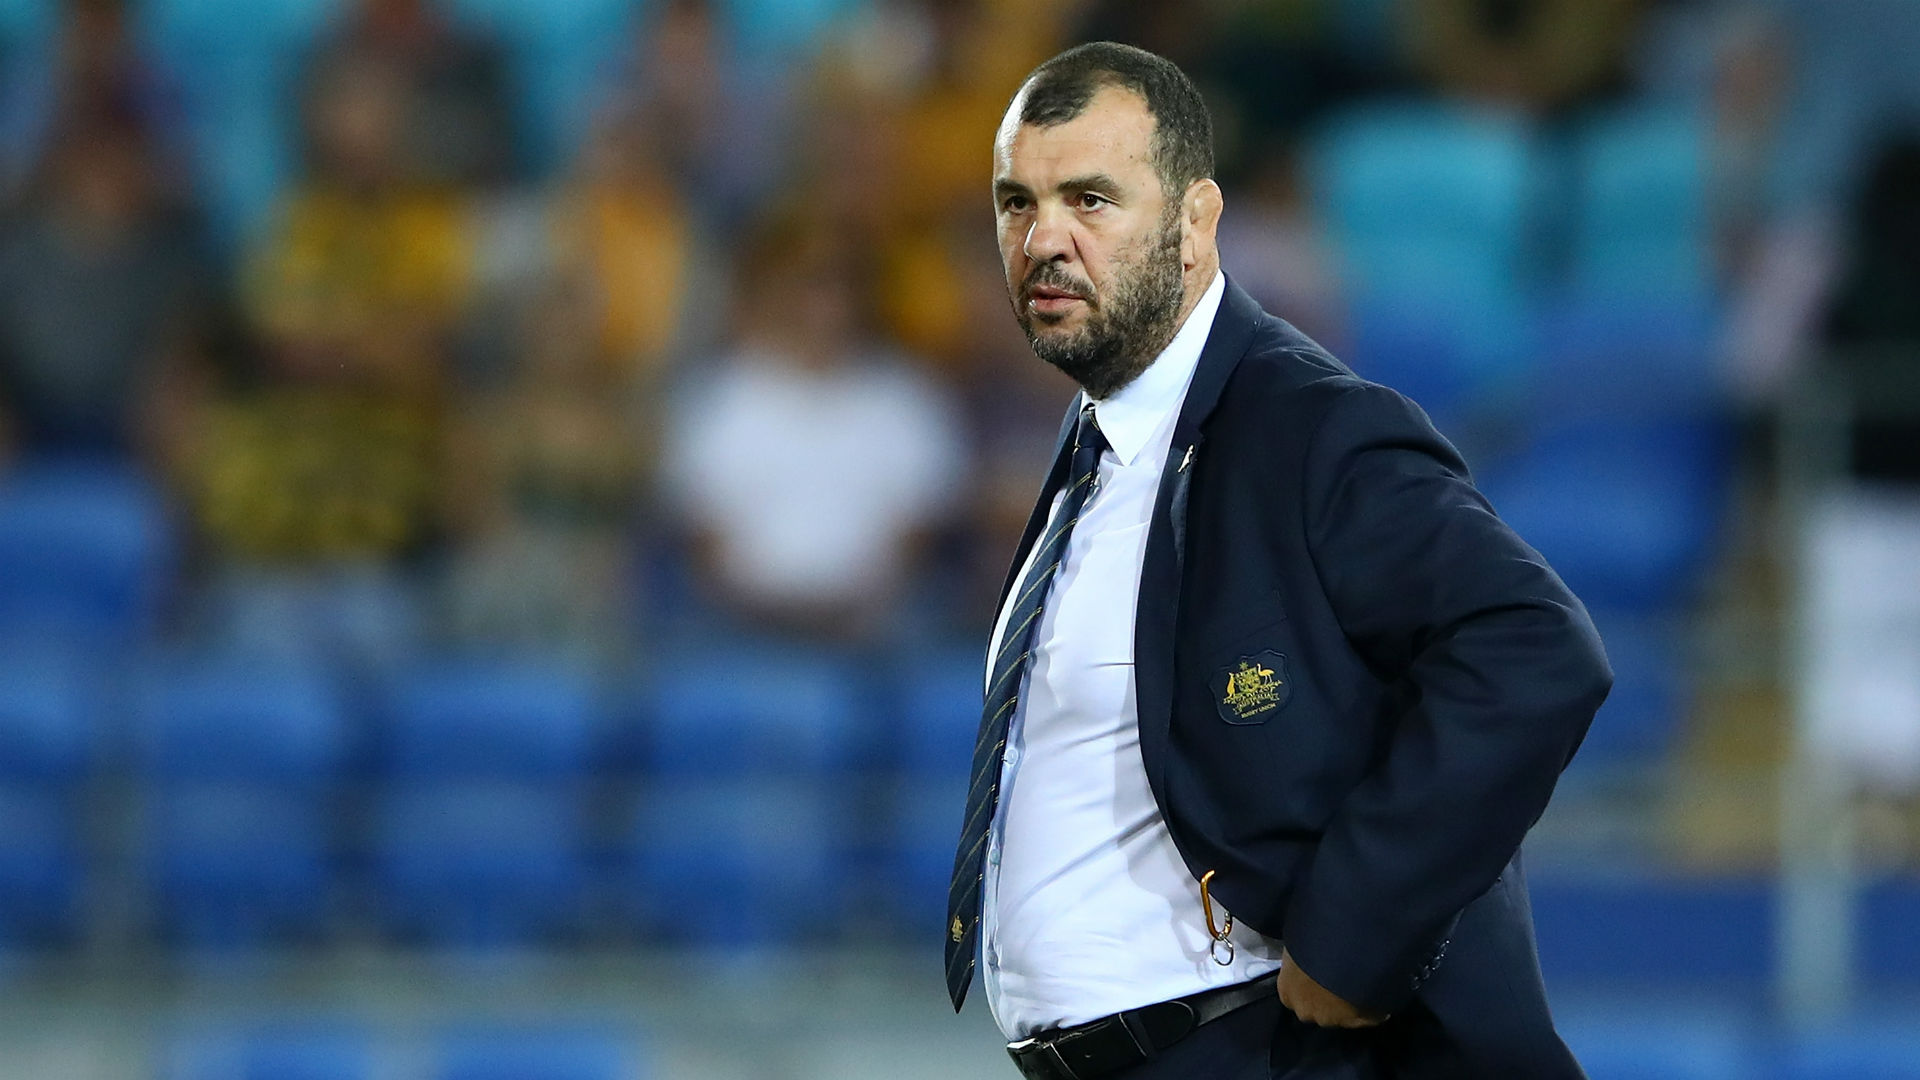 Horwill backs under-pressure Cheika